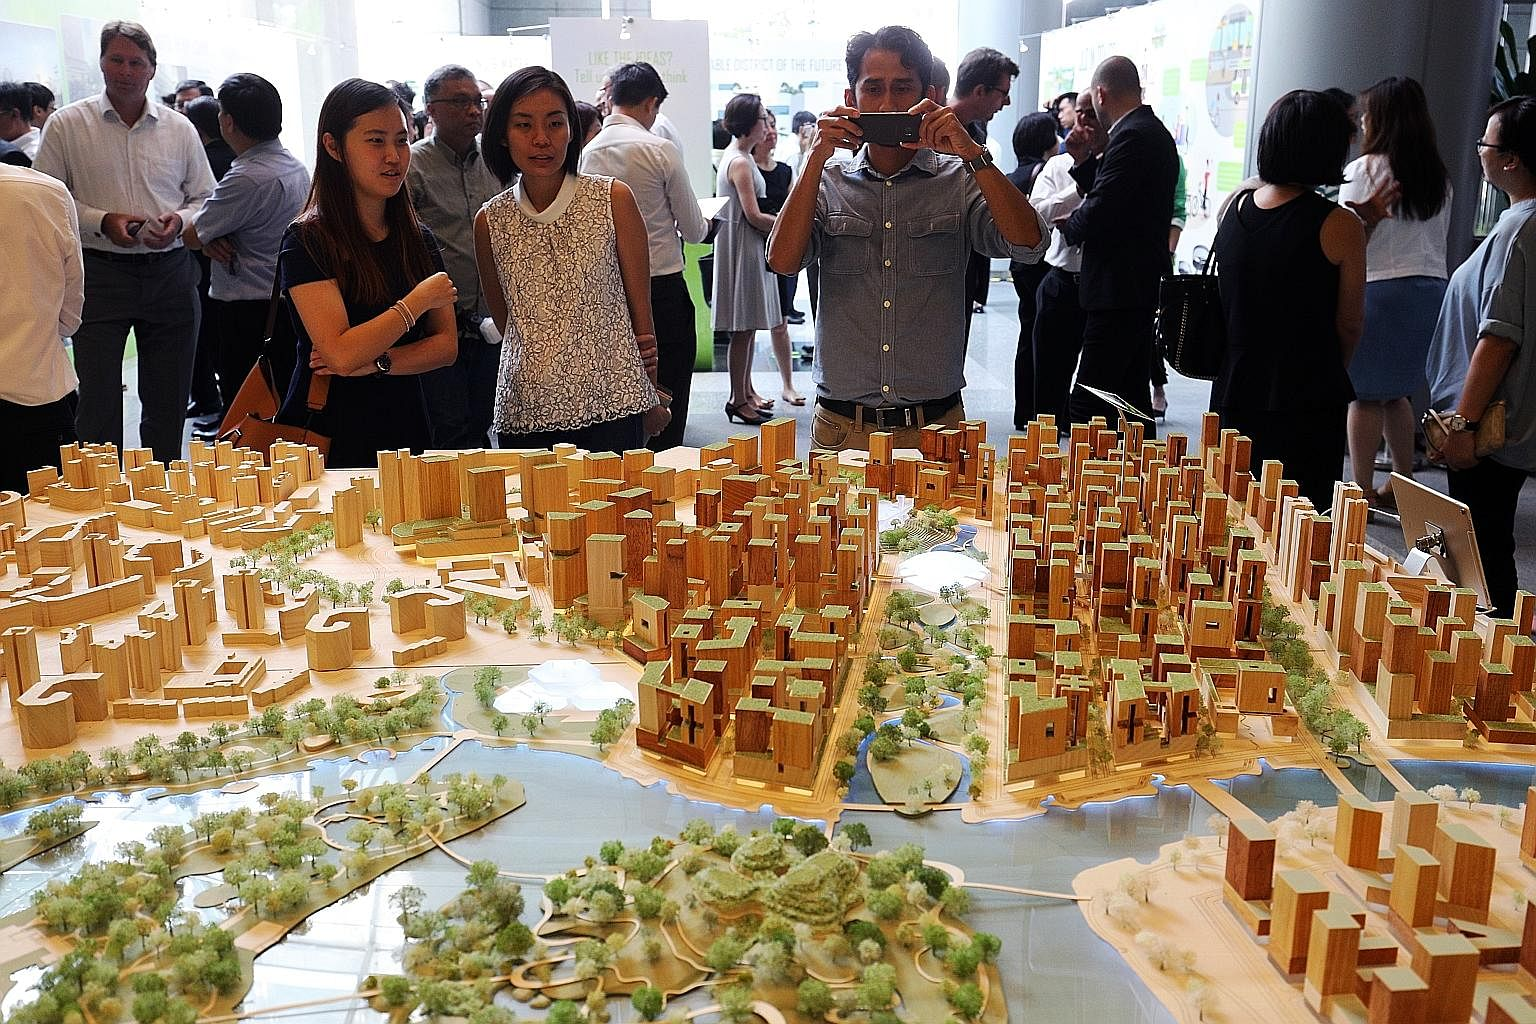 The Punggol Digital District masterplan aims to transform the area into a hub for the digital economy's key growth sectors. The district will also serve as a test bed for a slew of new features and planning practices. The zoning rules - which affect